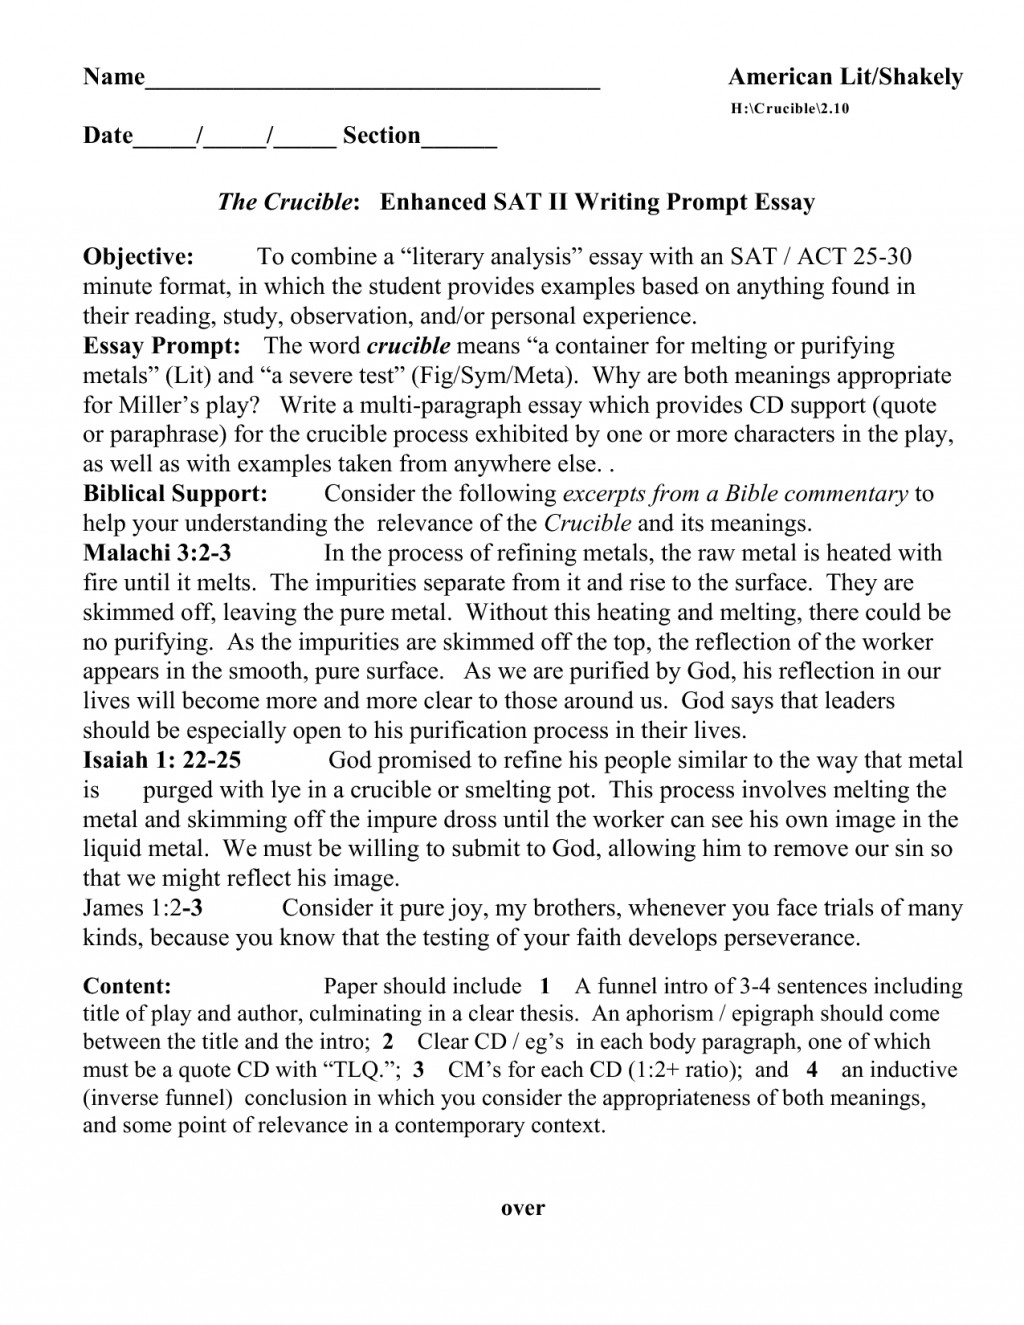 008 Sat Essay Prompts History Practice L Surprising 2015 Writing Solutions To 50 Sample Pdf Prompt June 2017 Large